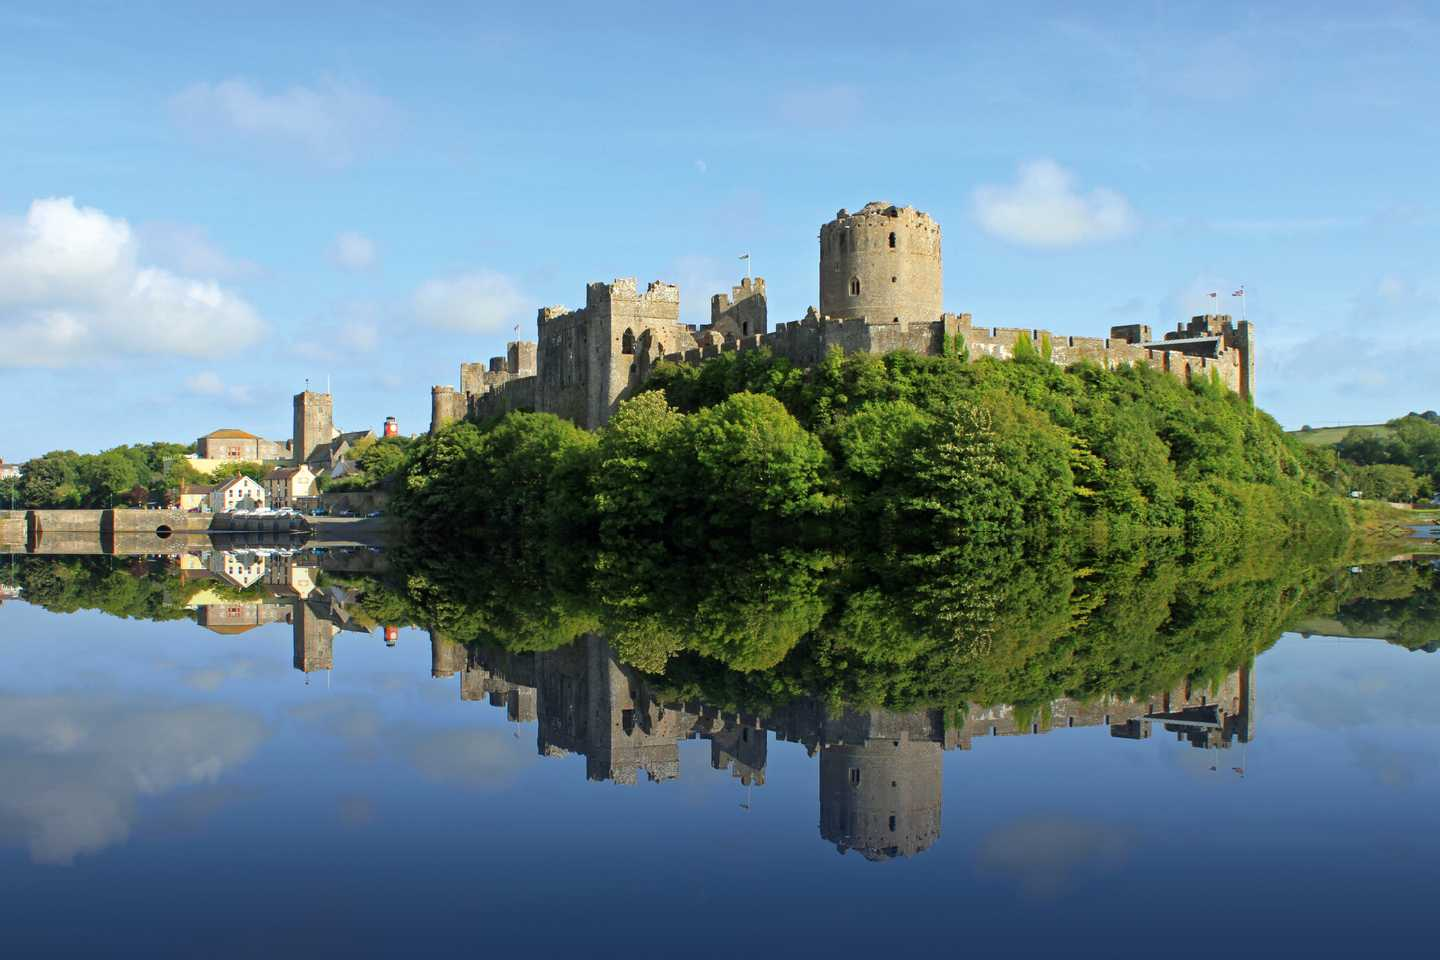 Pembroke Castle overlooking the river